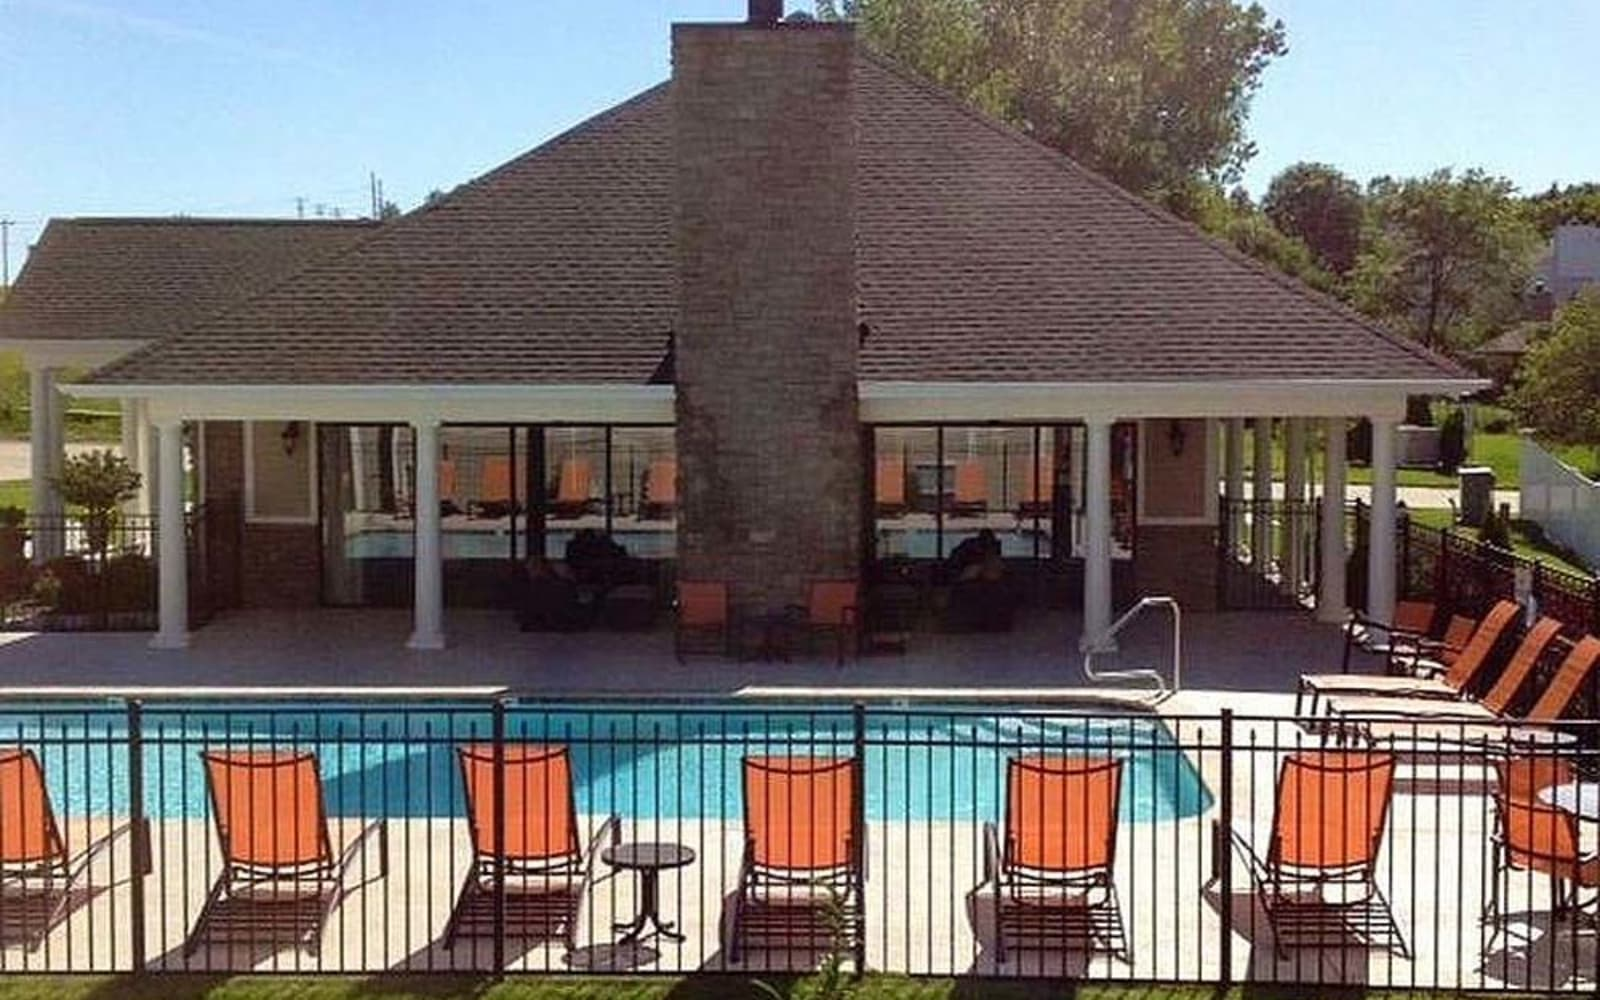 Pool with lounge chairs at Aventura at Mid Rivers in Saint Charles, Missouri.